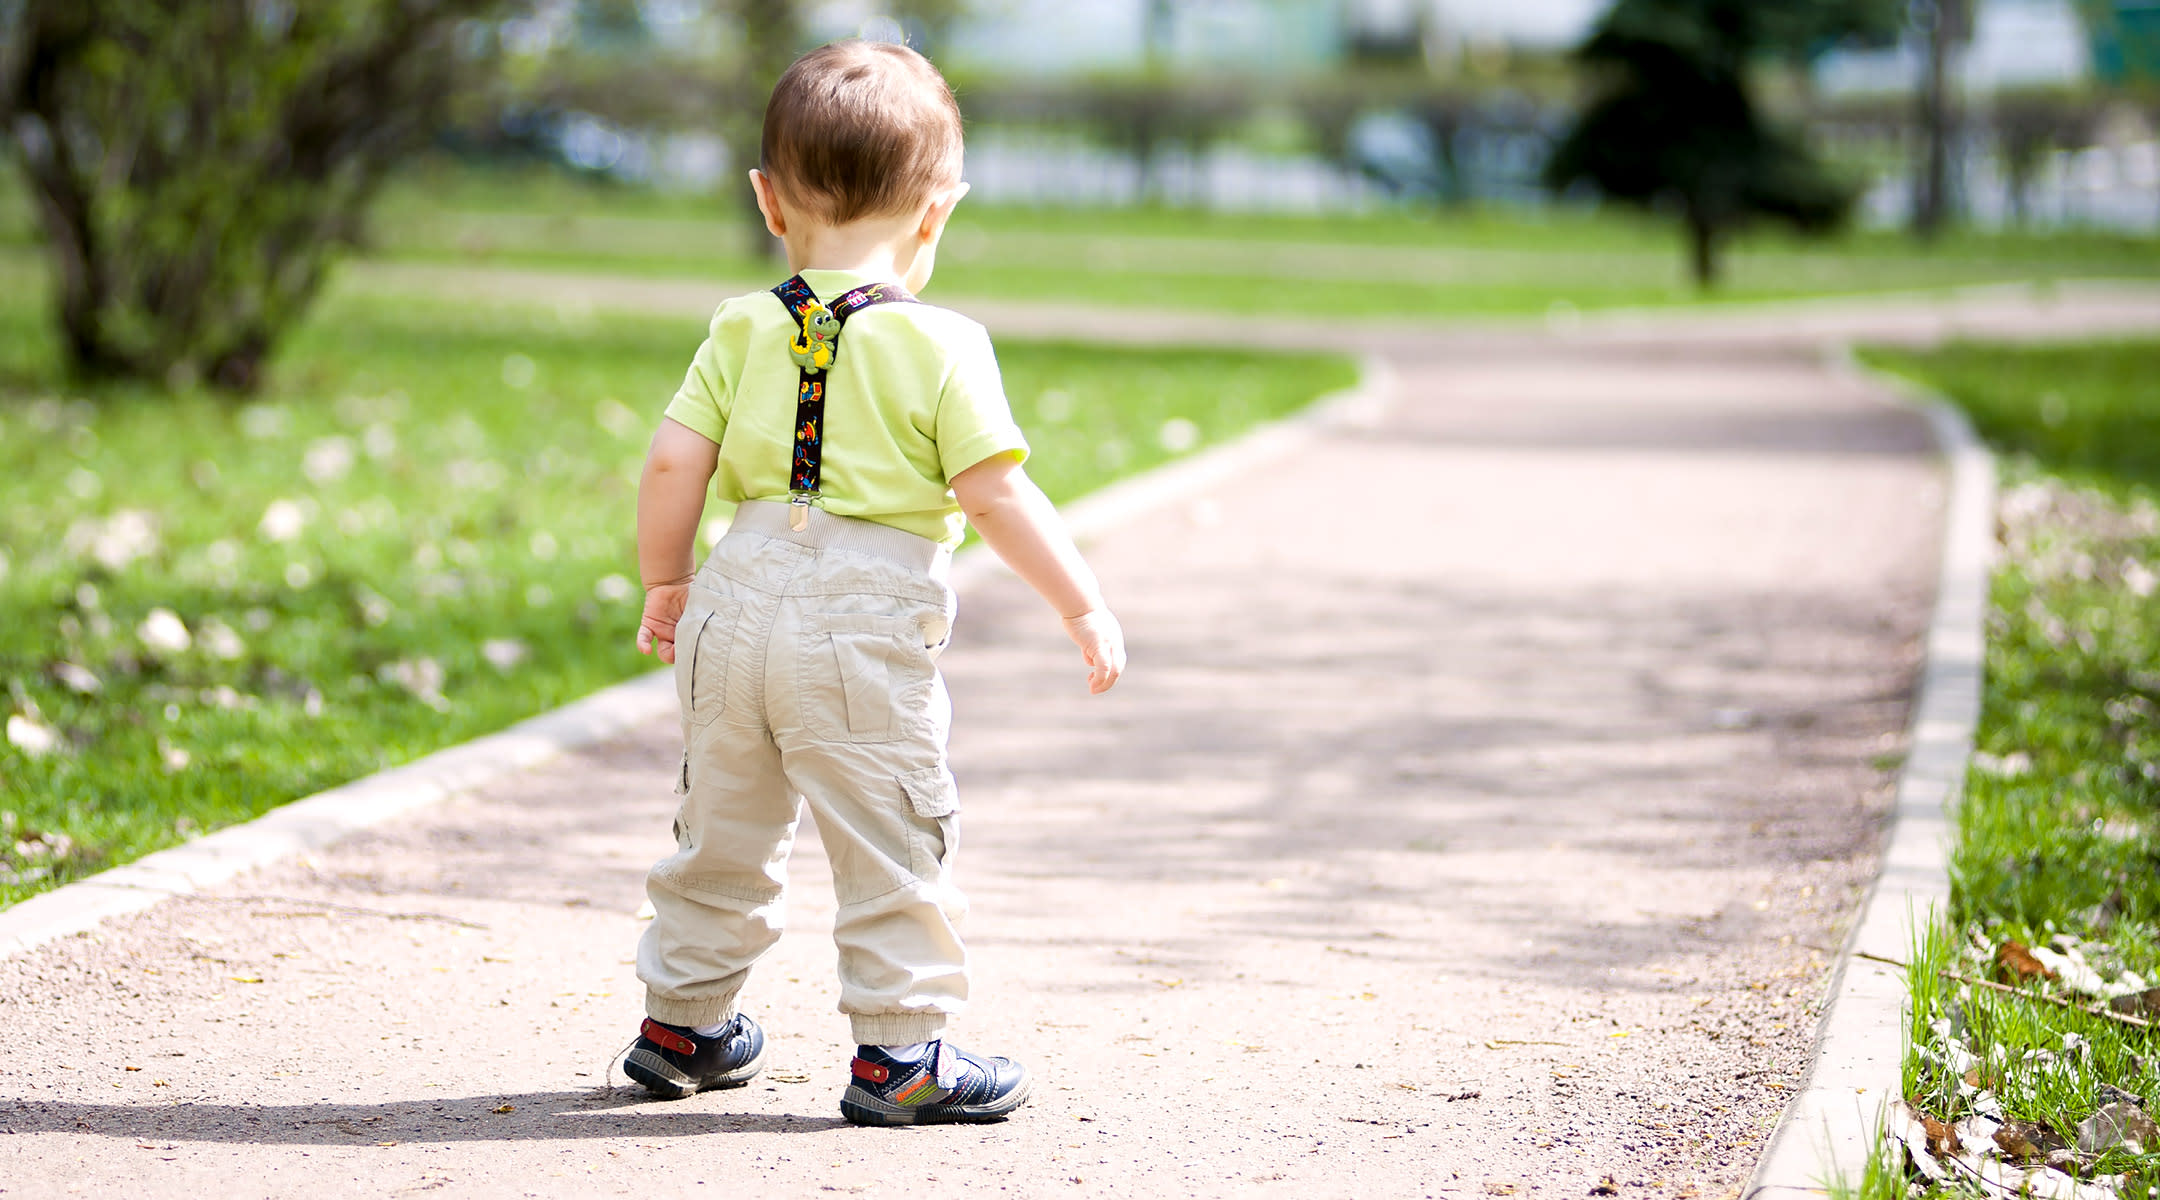 Should Babies Wear Shoes When Learning to Walk?